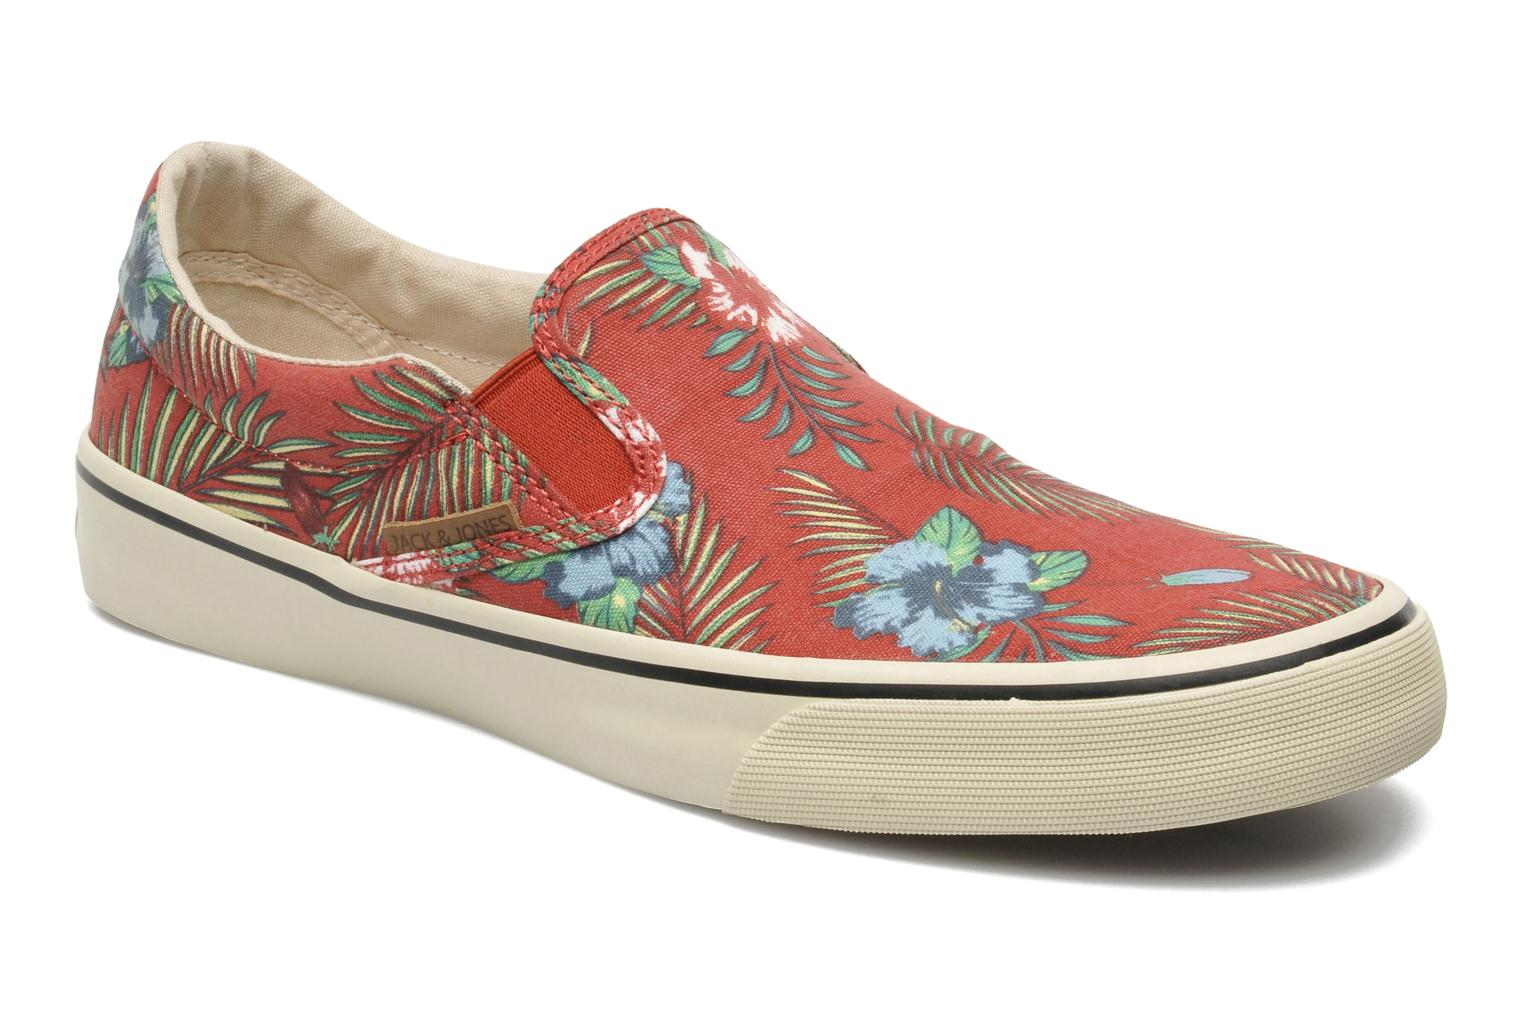 Sneakers JJ Surf Flower Canvas Loafer by Jack & Jones